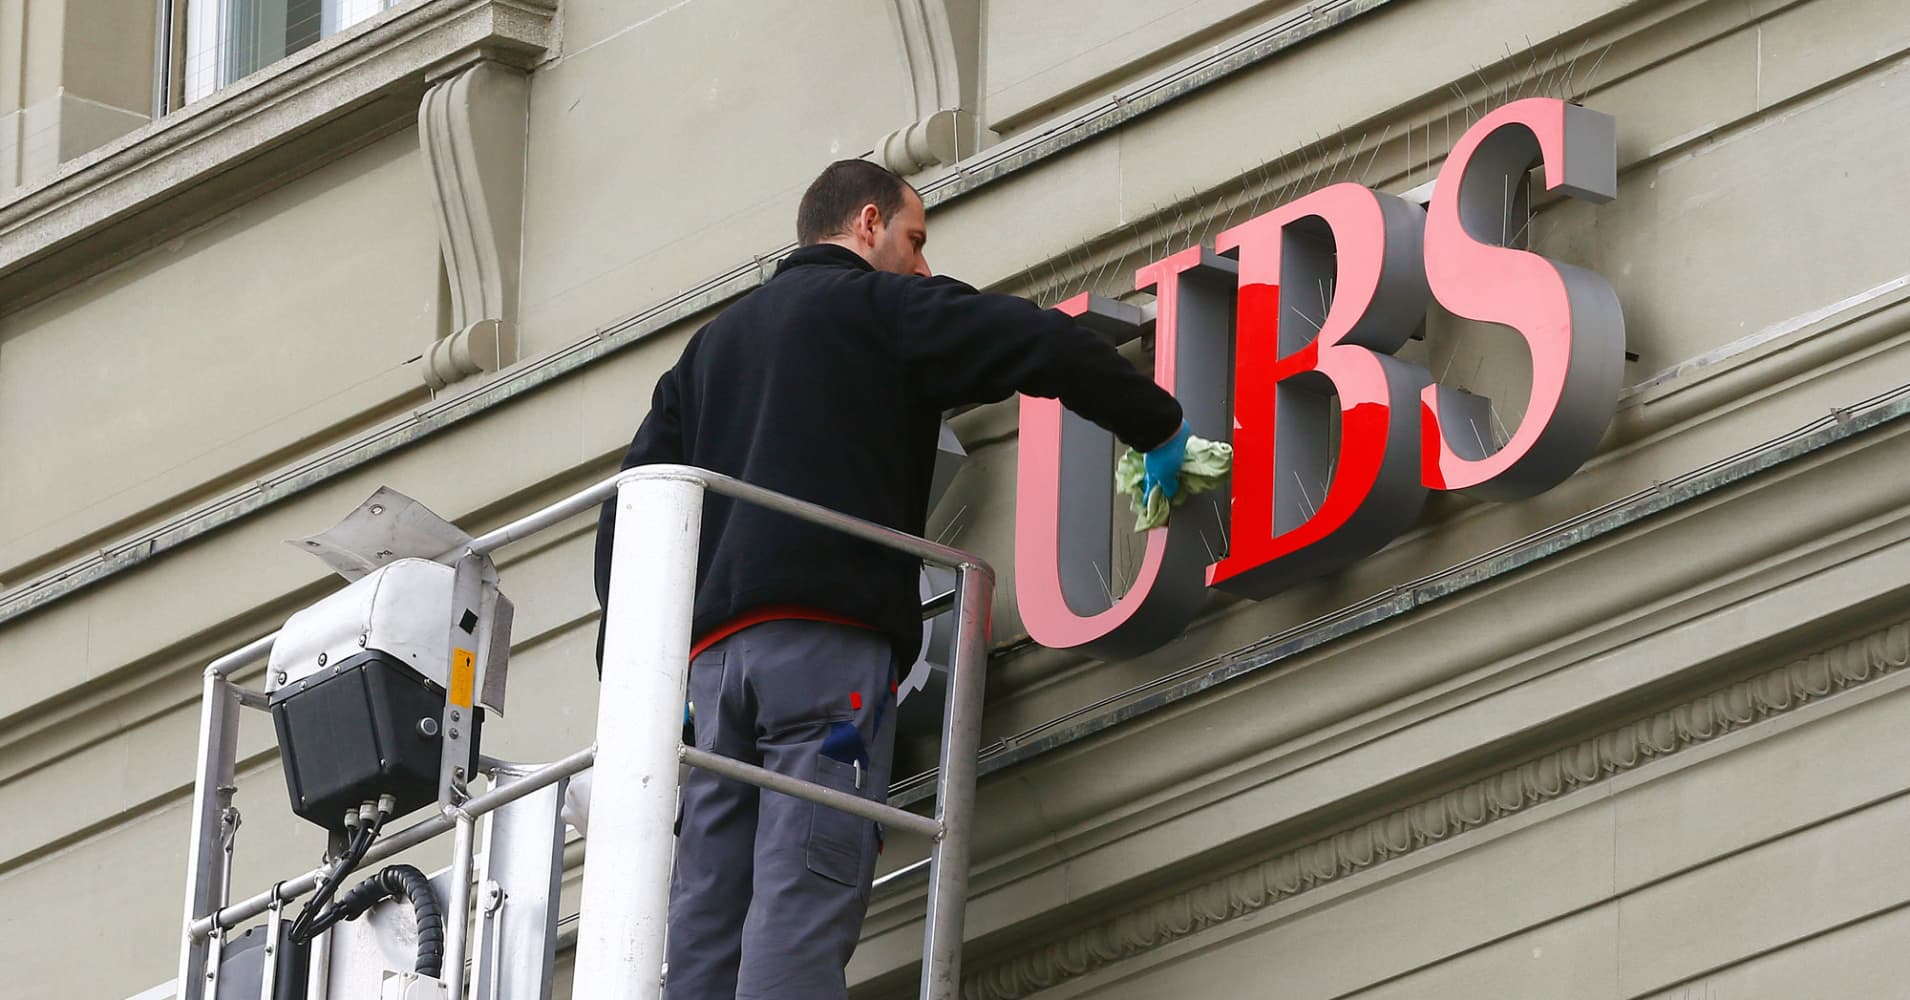 Ubs advised ipo deals